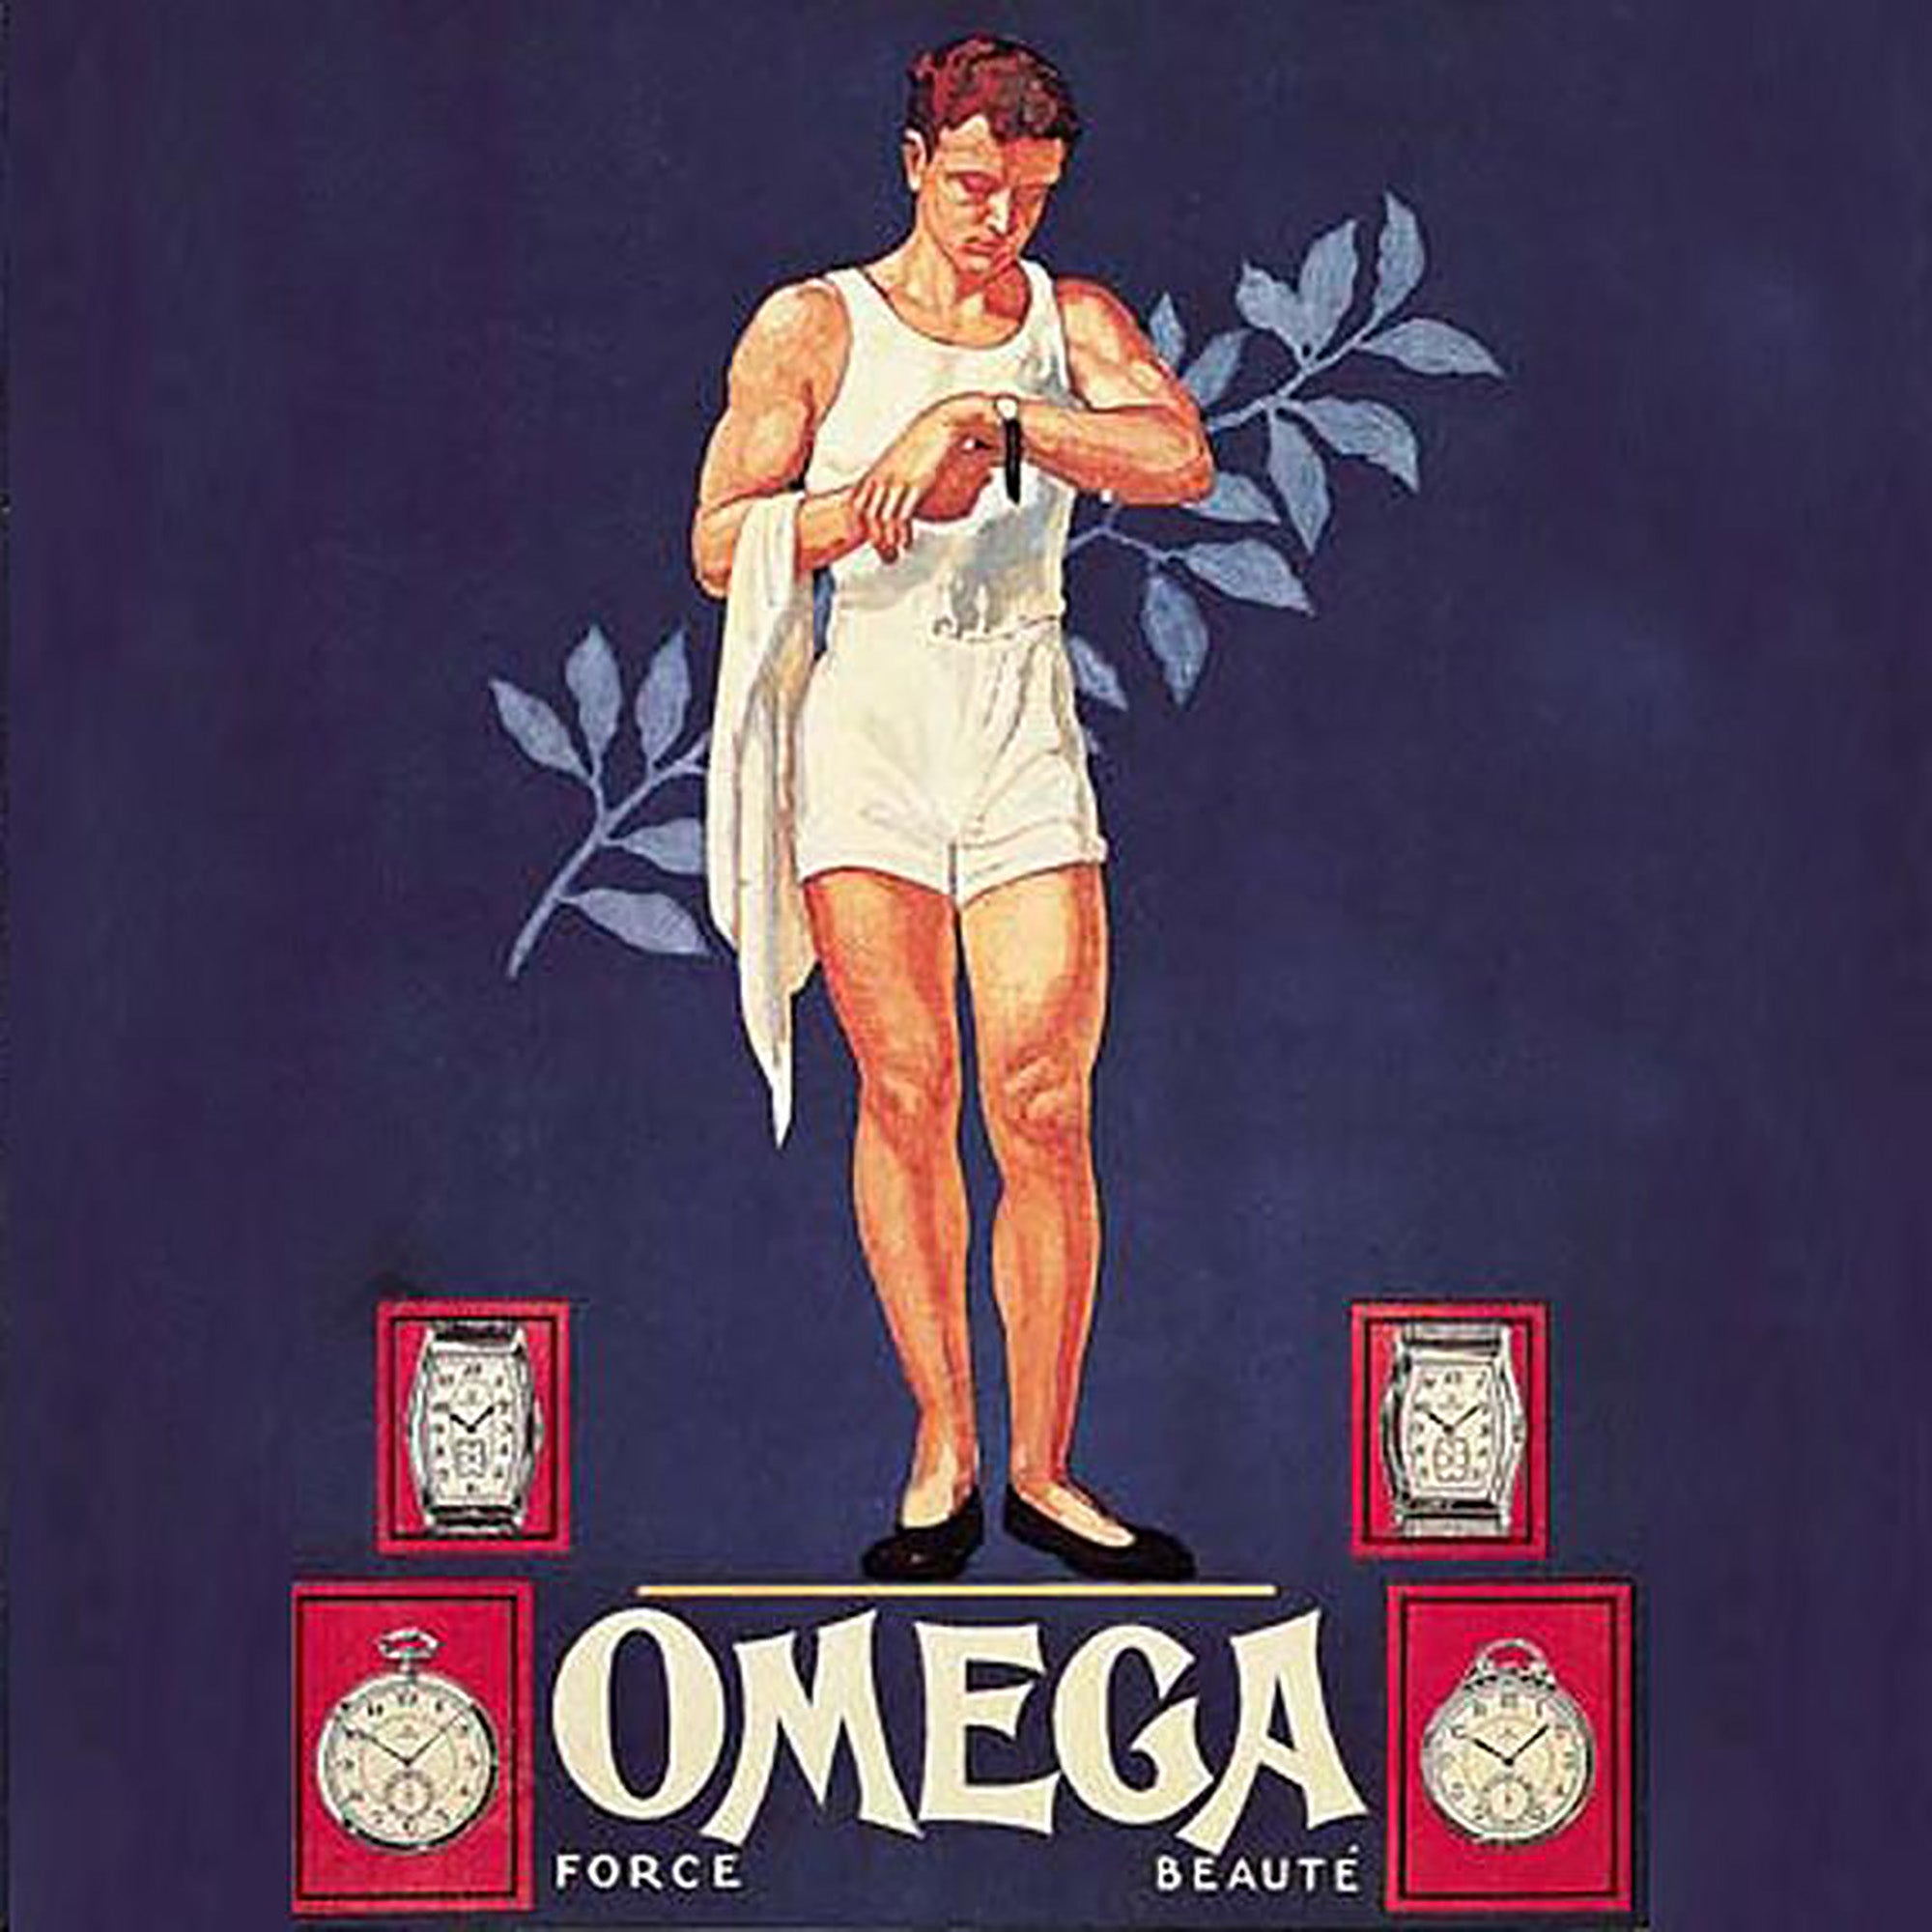 Iconic Omega watches (Part 3)